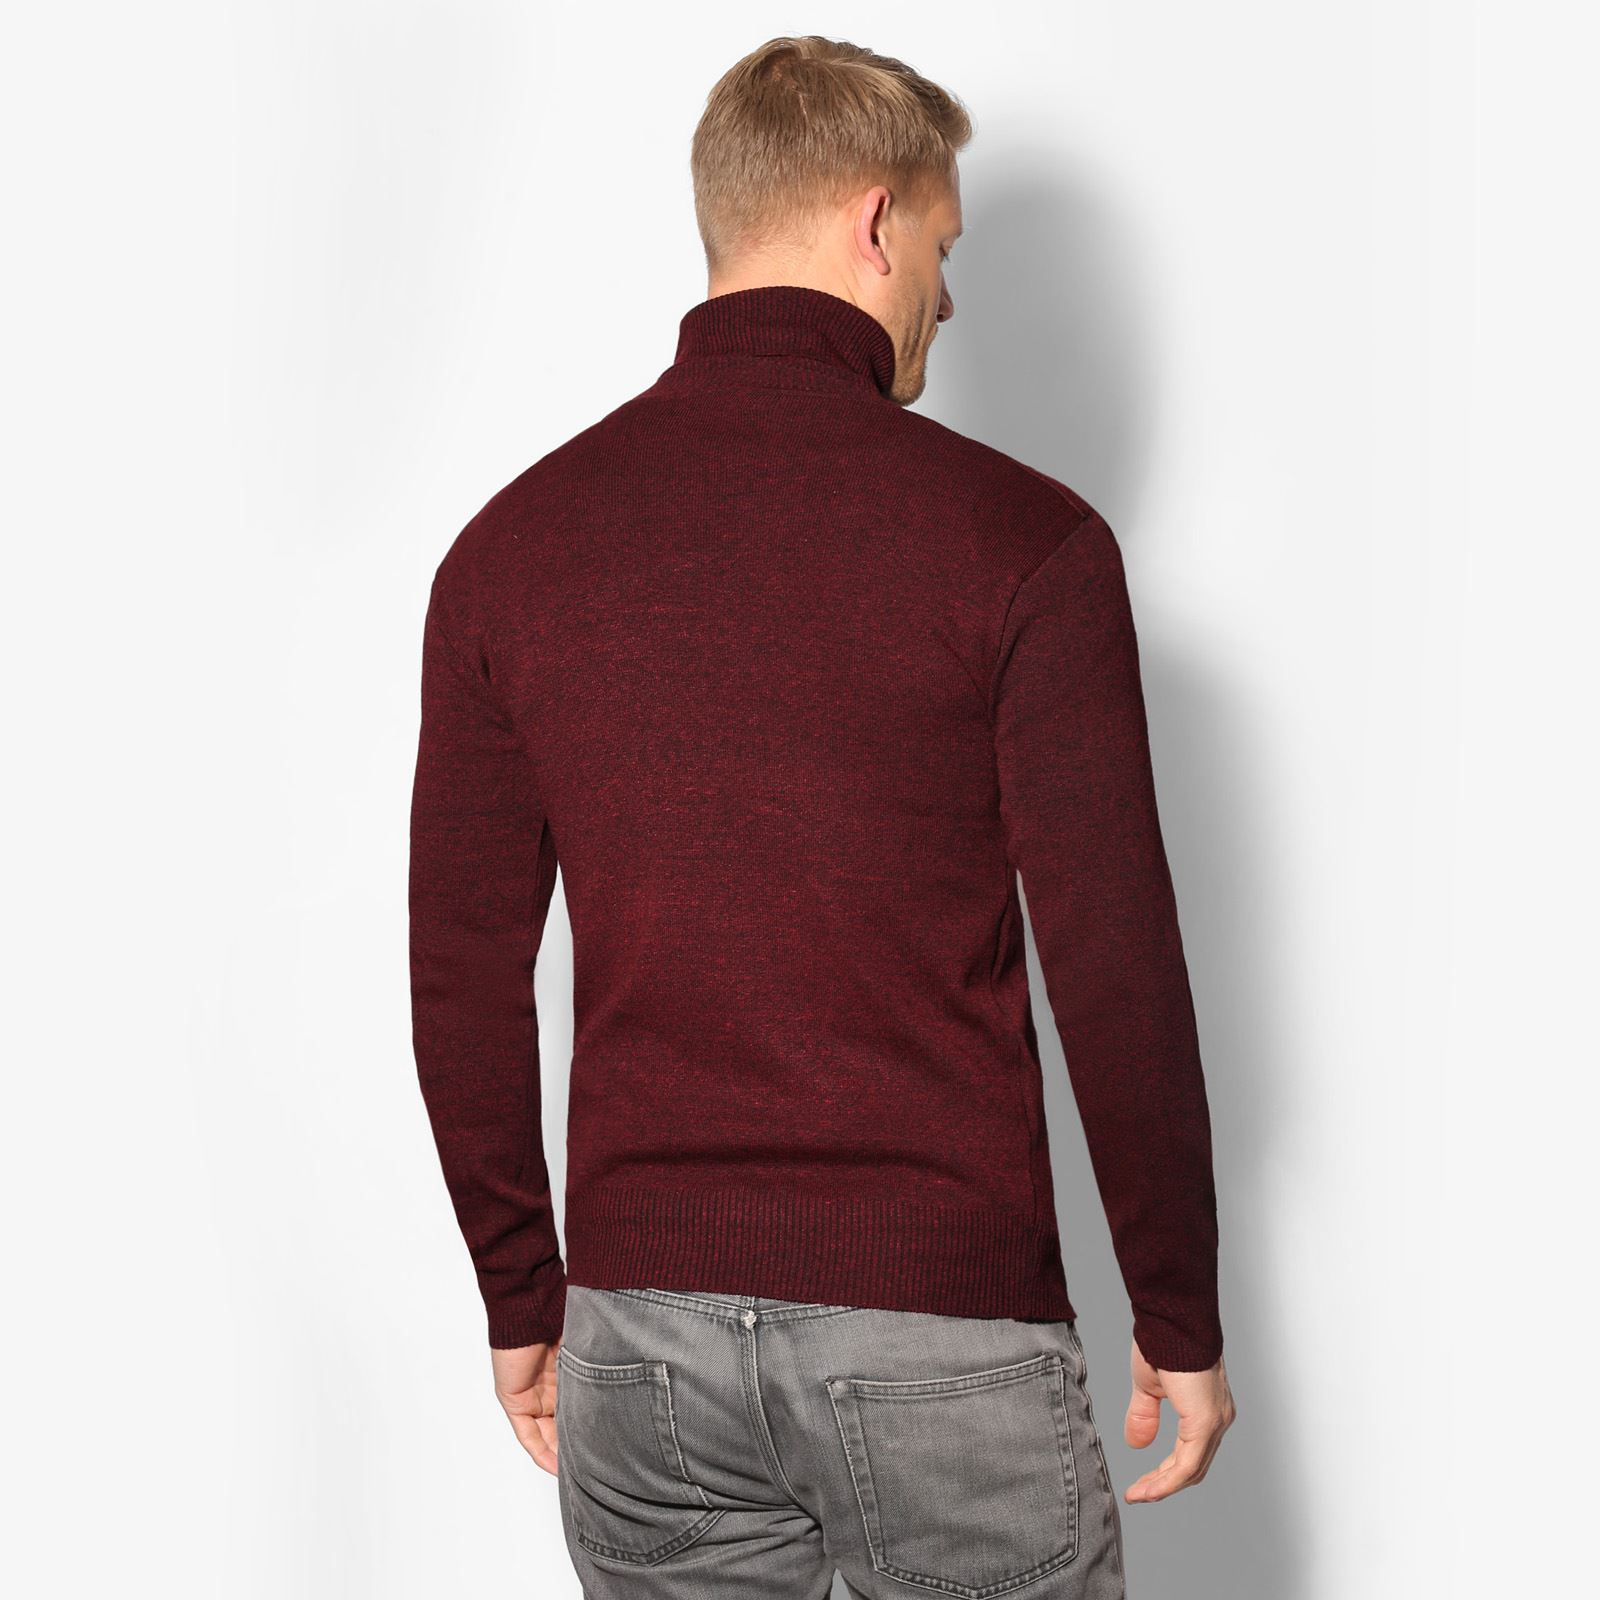 Mens-Turtle-Neck-Roll-Jumper-Sweater-Cotton-Knitwear-Winter-Pullover-Polo-Top thumbnail 7